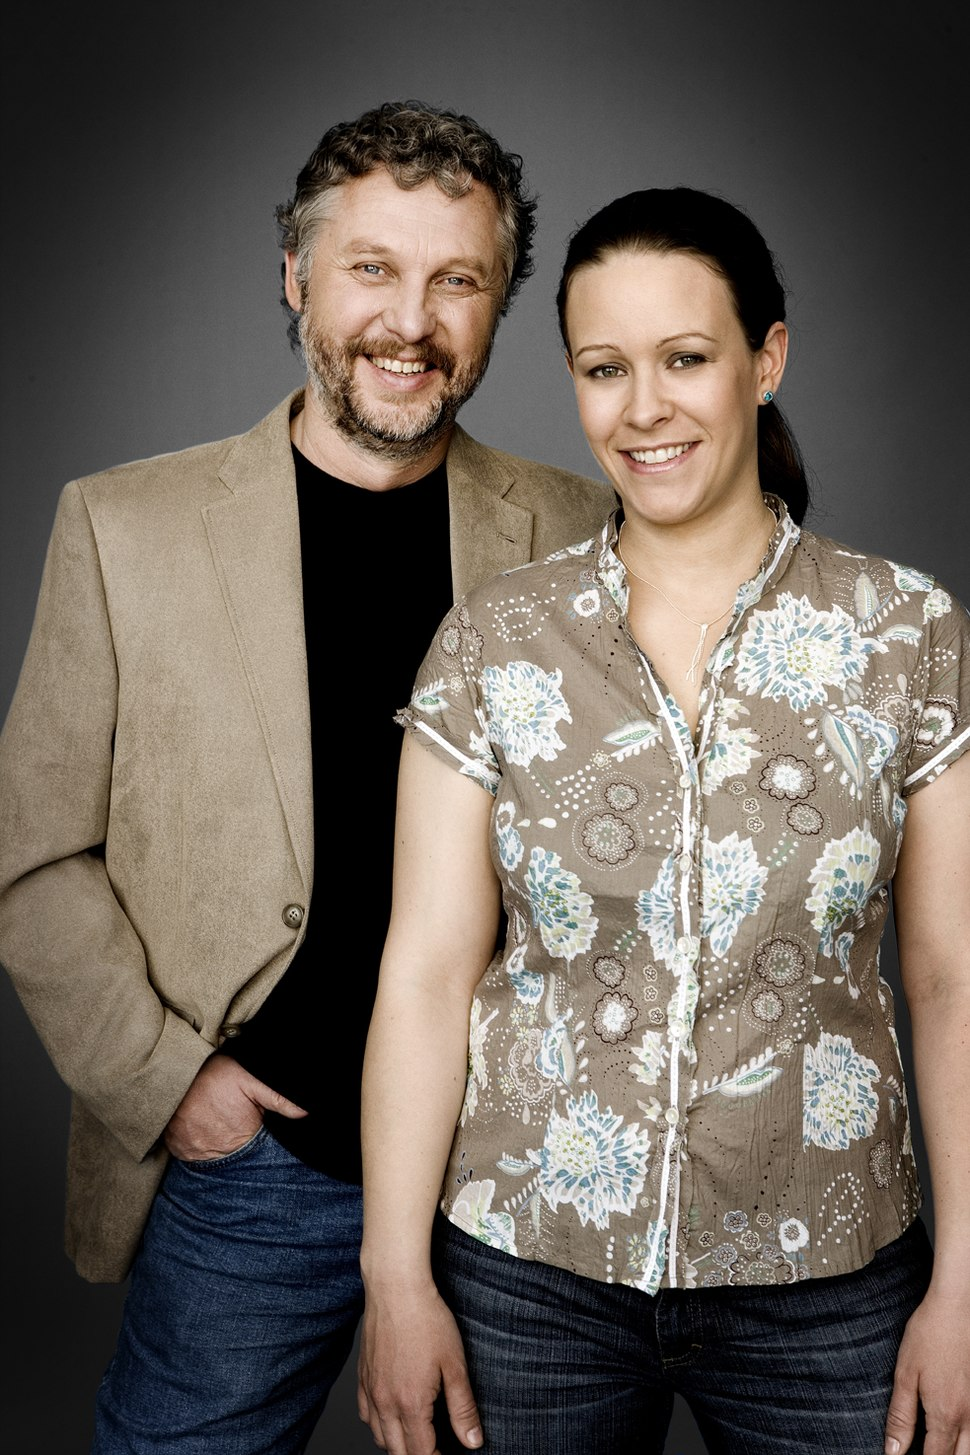 Peter Eriksson and Maria Wetterstrand